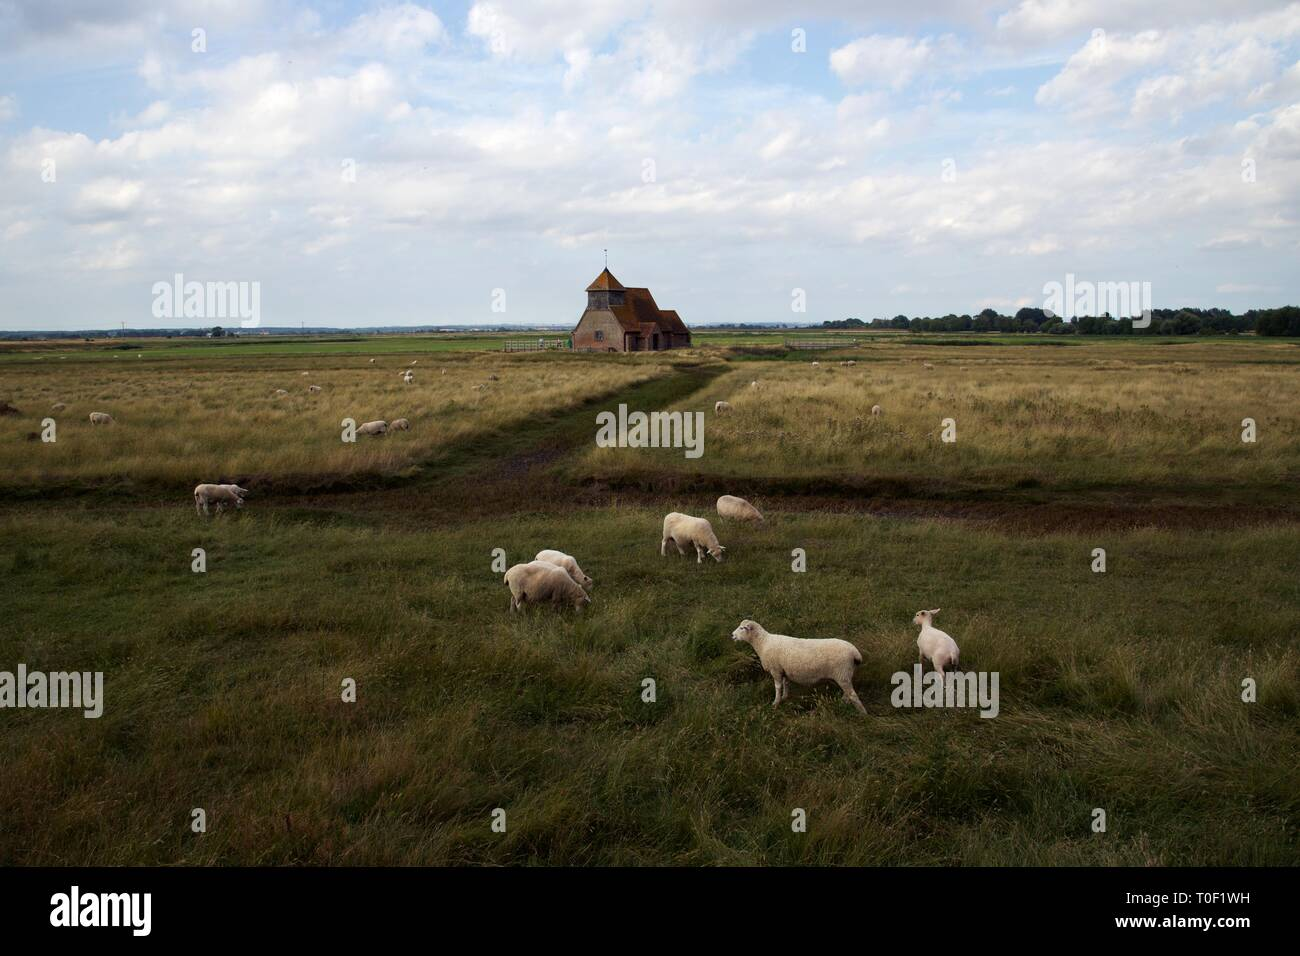 Panoramic view of the iconic St Thomas à Beckett Church, Fairfield, Romney Marsh, Kent with sheep in foreground - Stock Image